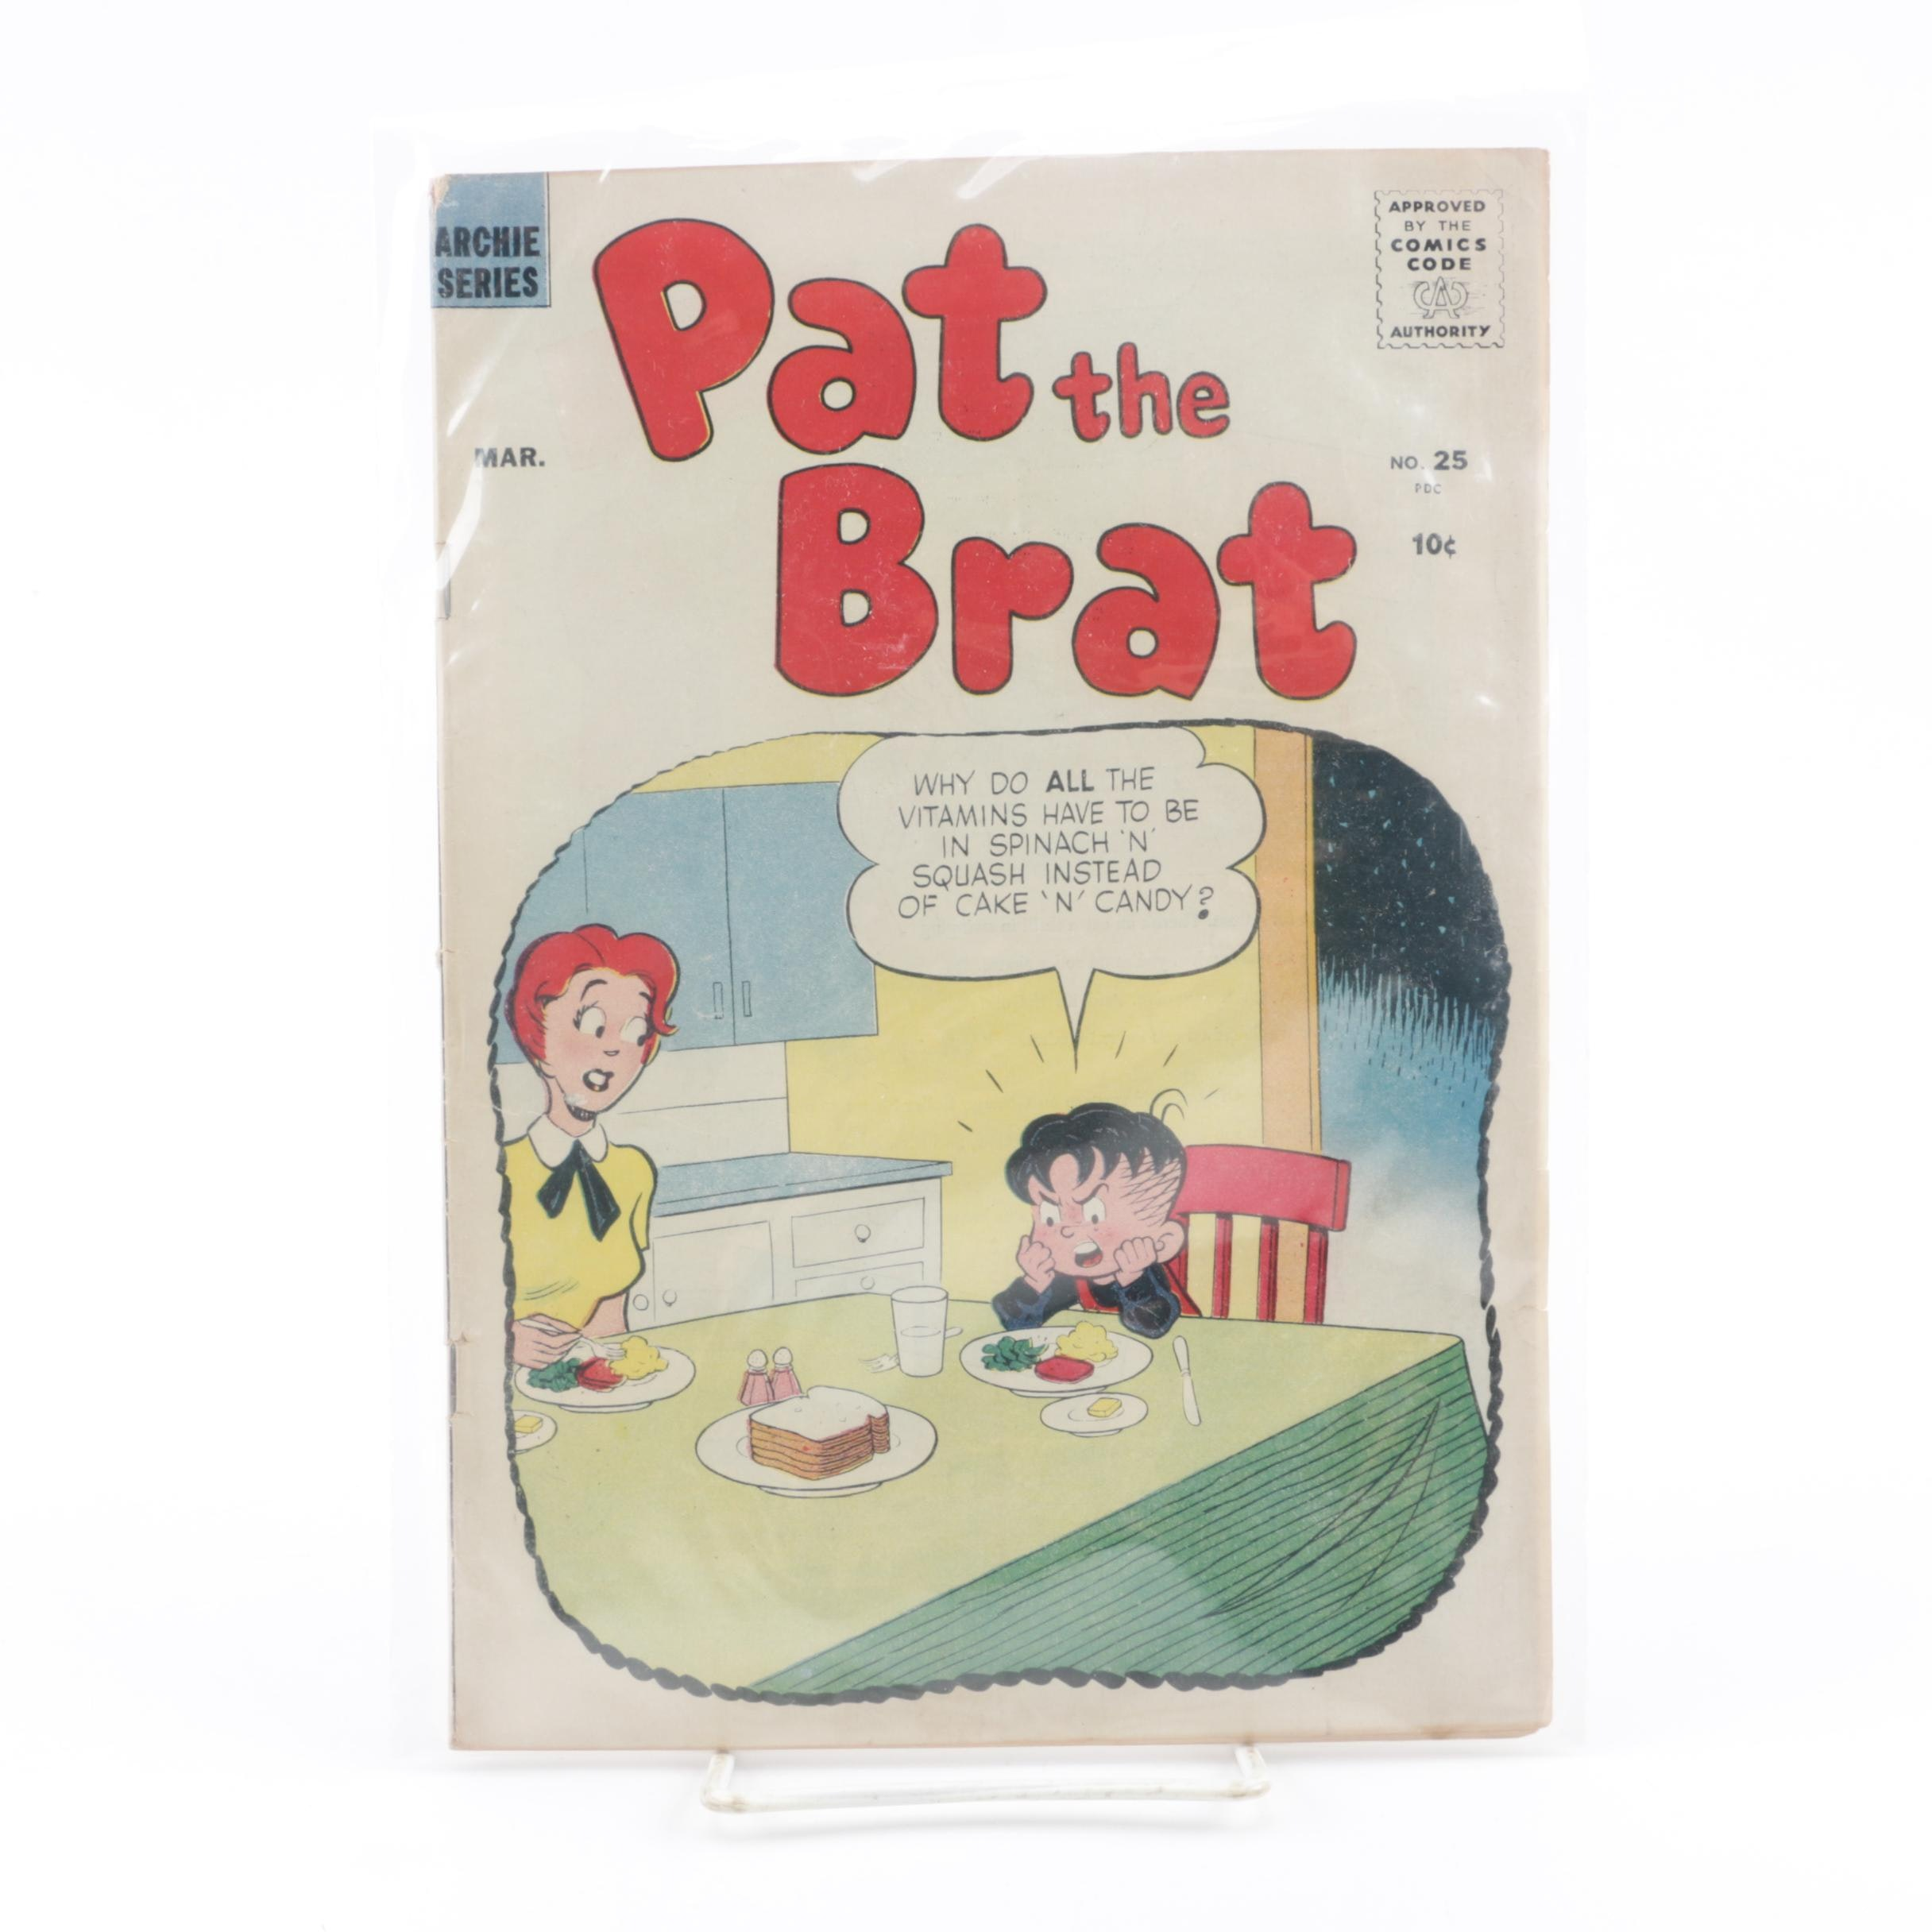 """March 1958 """"Pat the Brat"""" Comic Issue"""